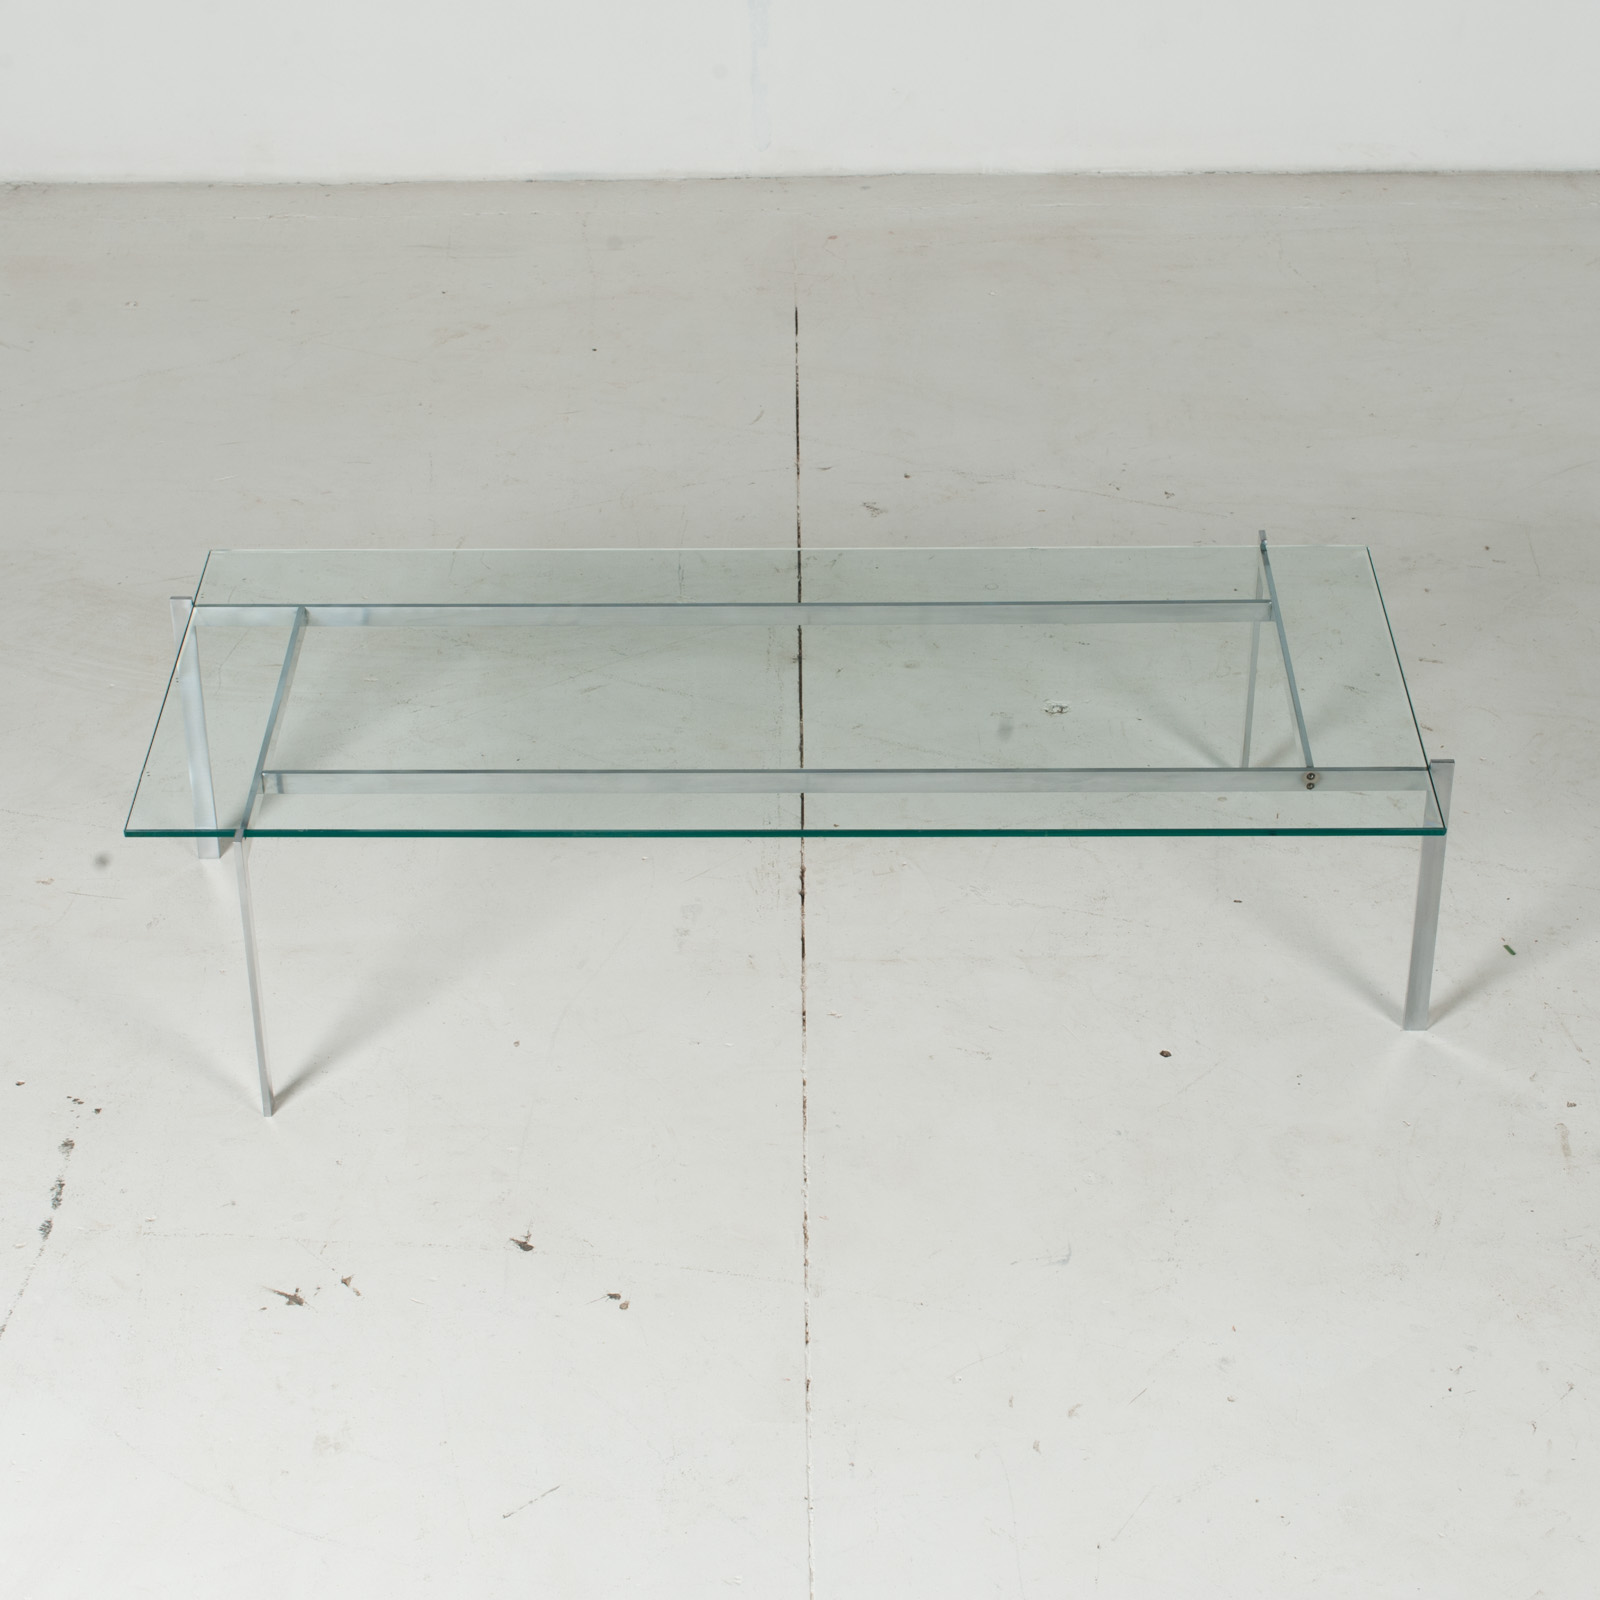 Coffee Table In The Style Of Poul Kjaerholm With Chrome And Glass, 1960s, Netherlands3